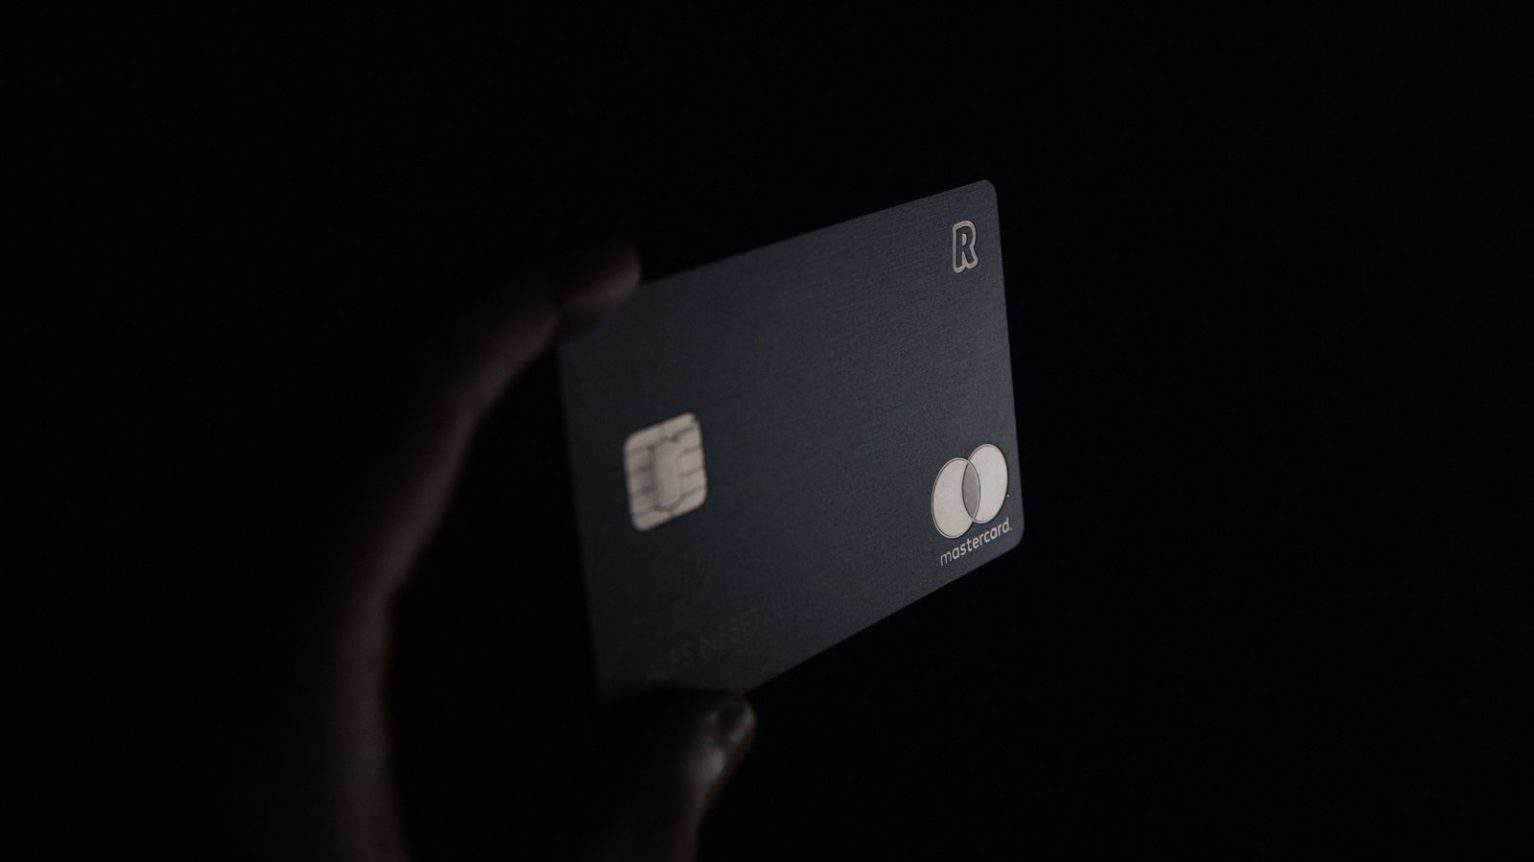 a hand holding a mastercard credit card